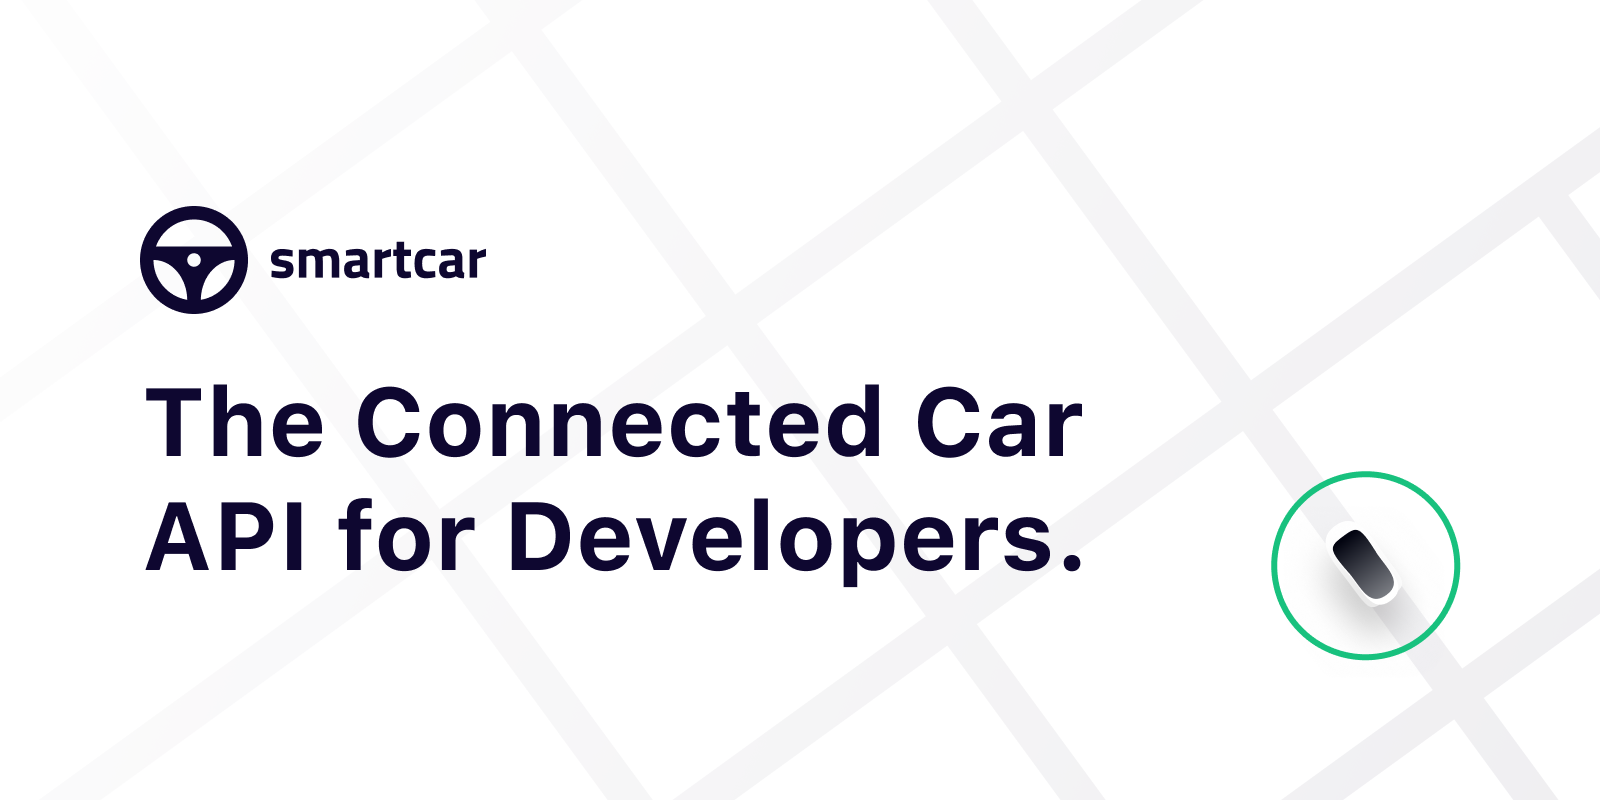 Smartcar: the connected car API for developers